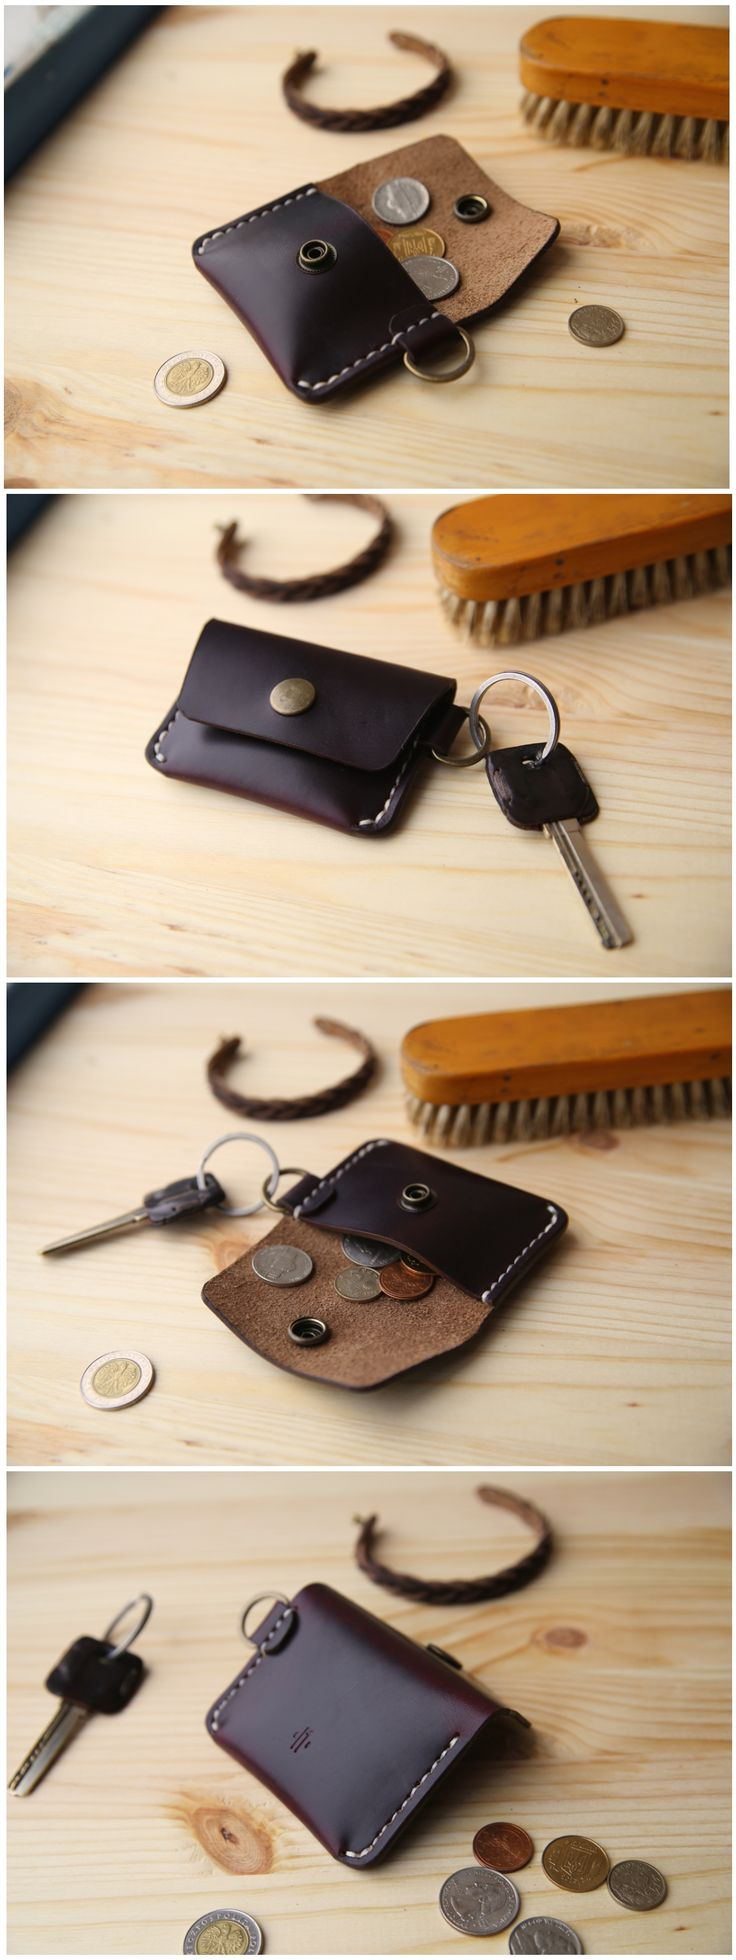 Horween Chromexcel #8 Coin Purse.  #manufacturabrand#accessories #wallet #leather #handmade#leathergoods #everydaycary #handcraft #handstitched #leathercraft #horween #horweenwallet #coinpurse #coinwallet #coinpouch #keychain #leatherkeychain